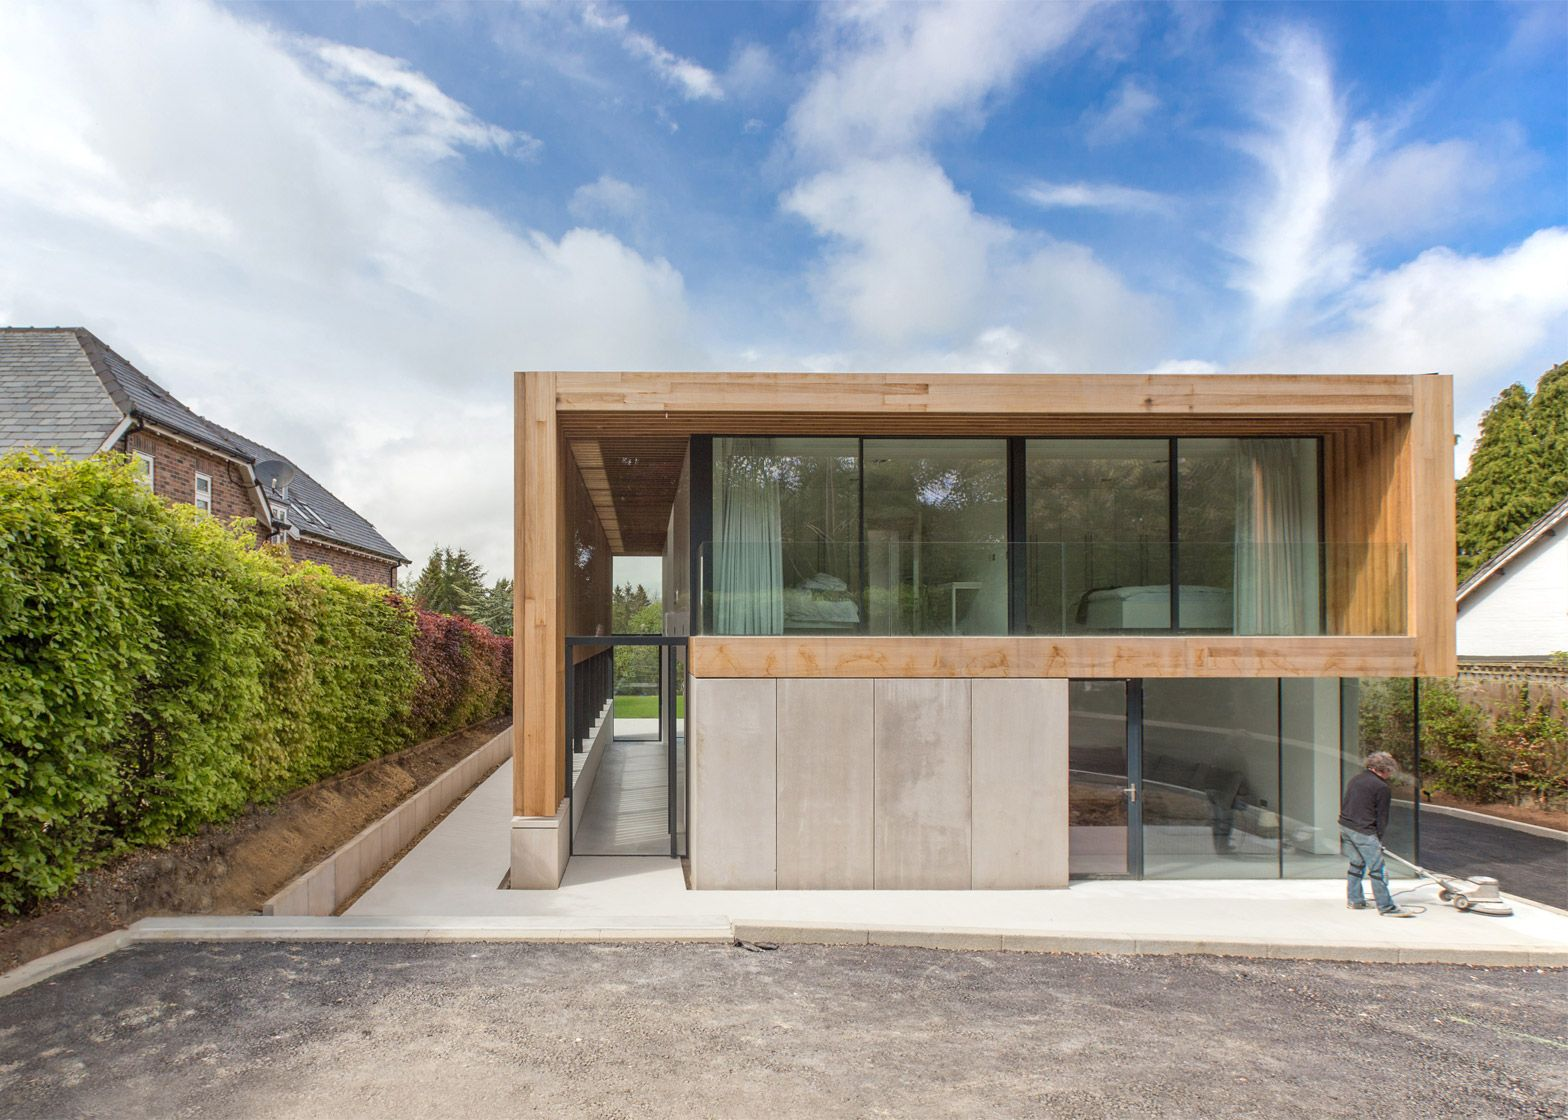 House design newcastle - Britain S Best New Homes Revealed For Riba House Of The Year 2016 House Designnewcastlenew